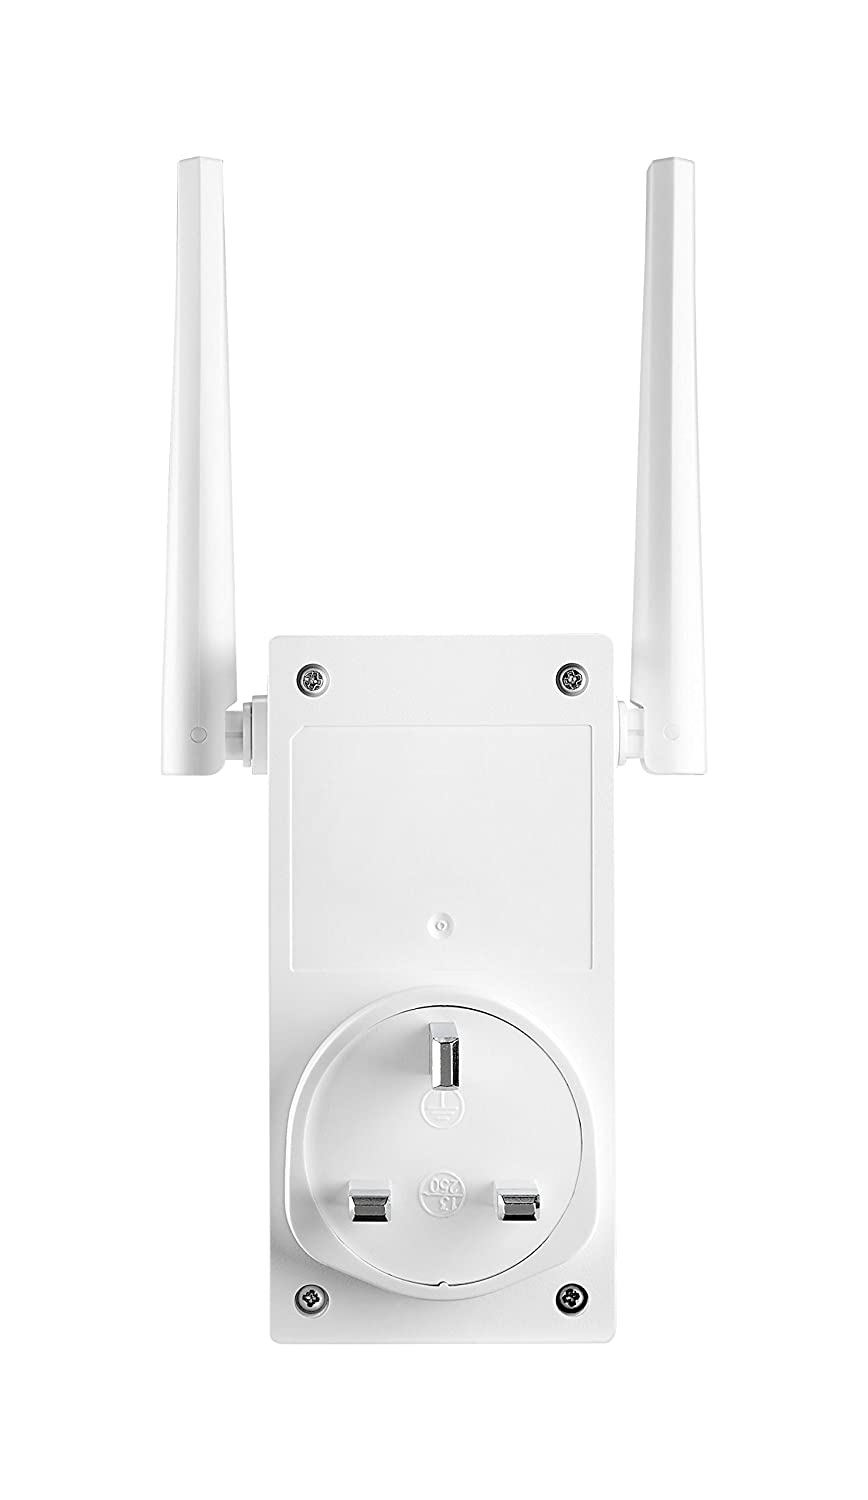 ASUS RP-AC52 Dual-Band Wireless-AC750 Wall-Plug Range Extender//Access Point with Signal Indicator